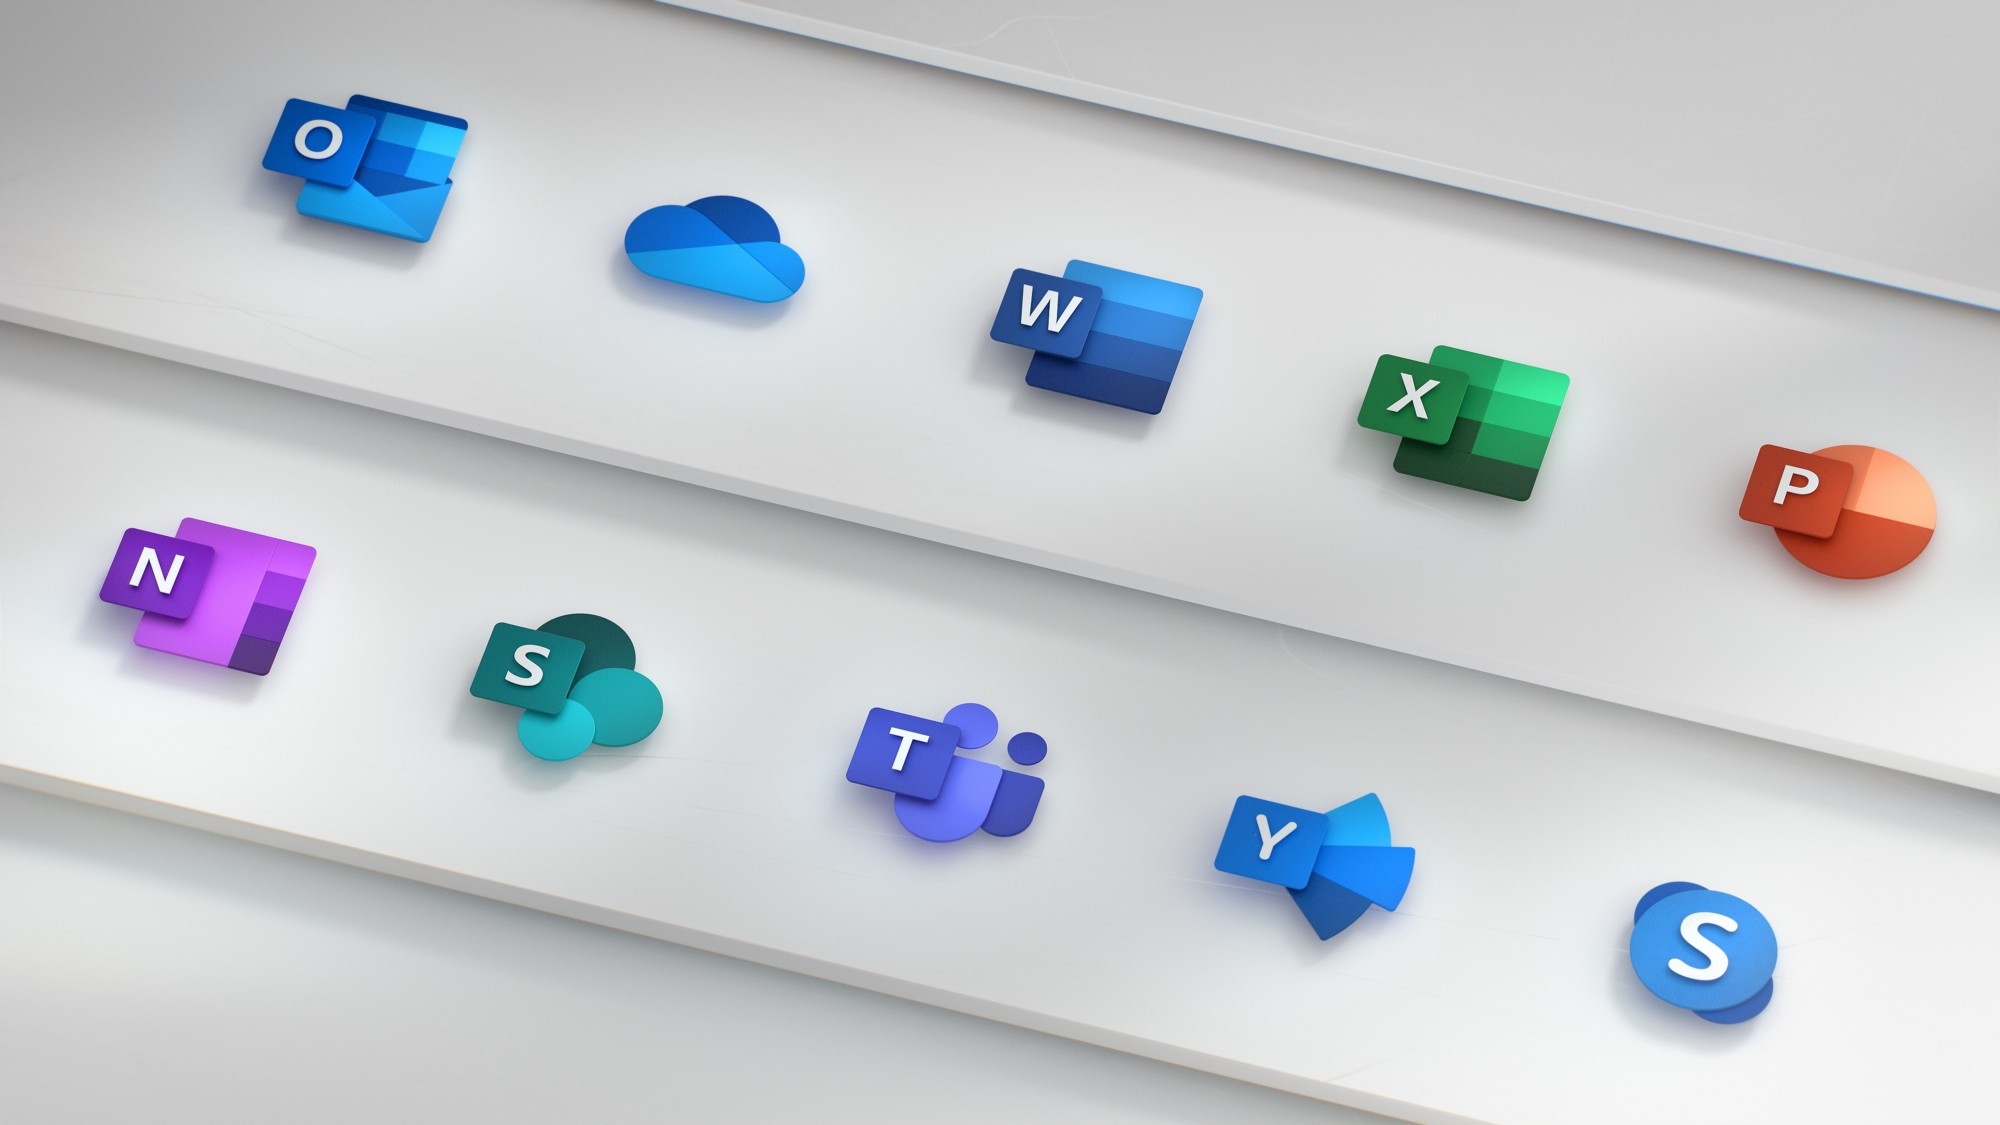 Microsoft Office has pretty new icons but they have a fatal